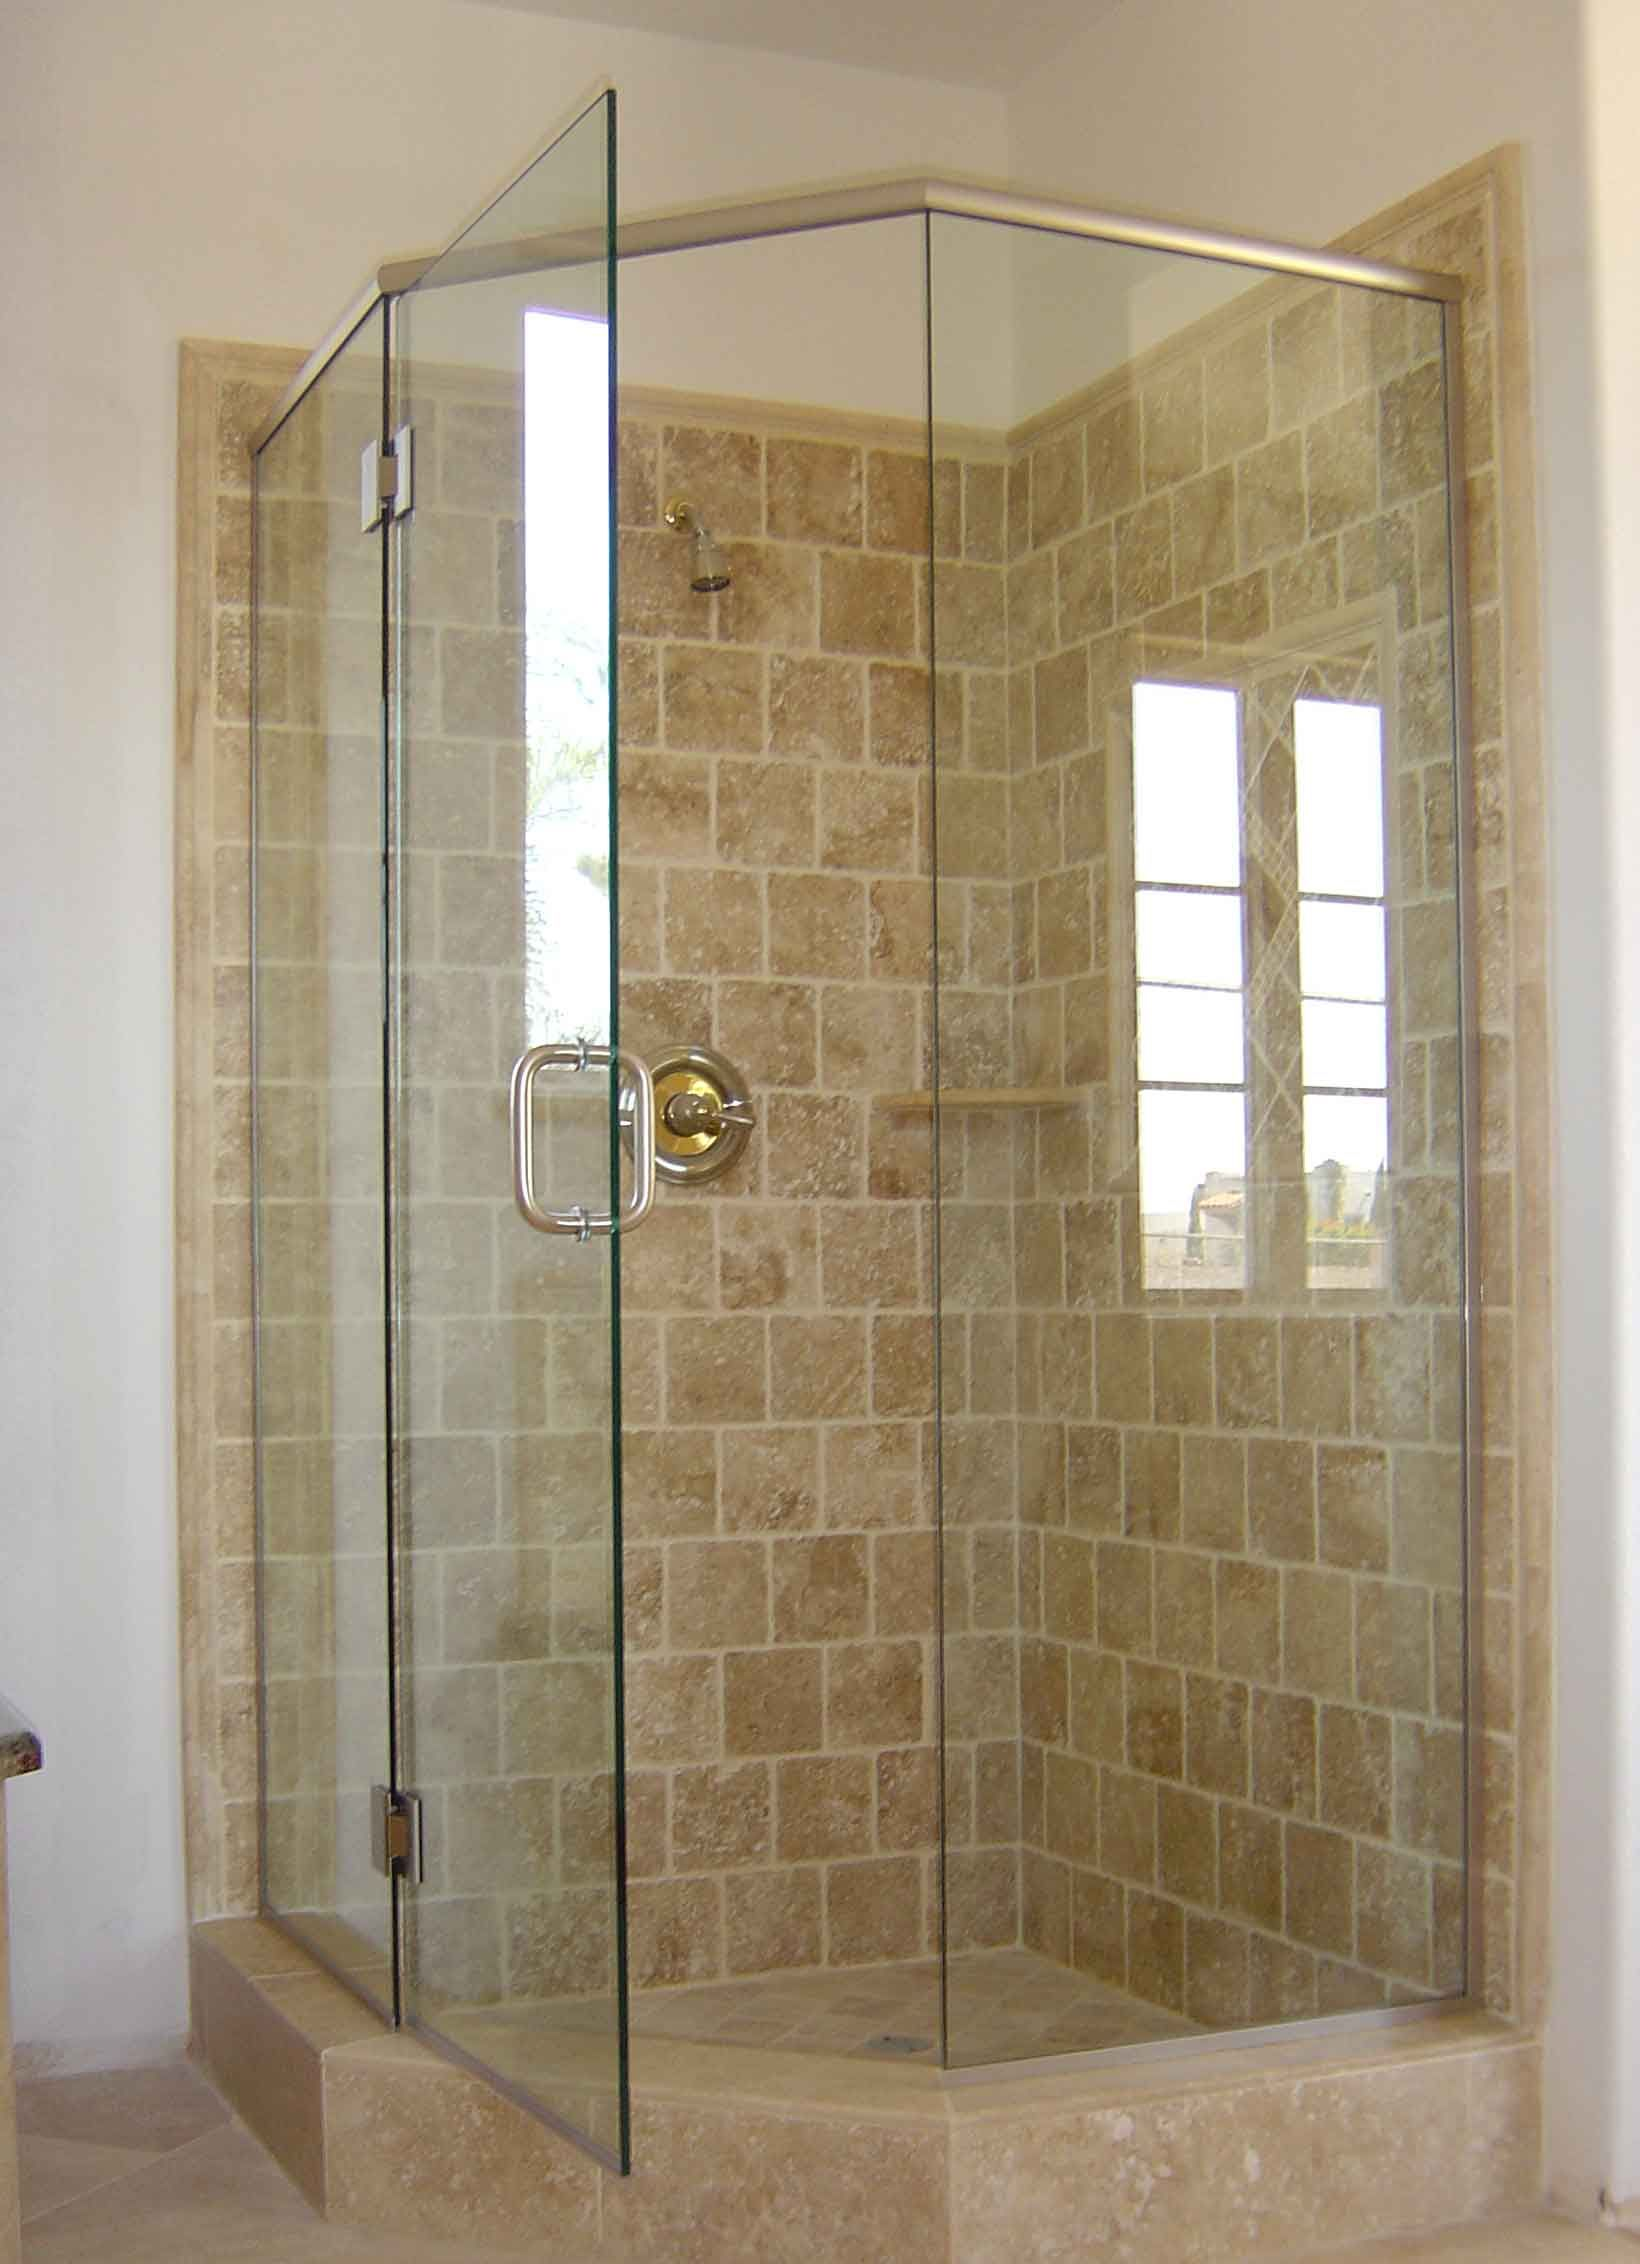 Upstairs bathroom corner shower pinteres for Bathroom designs with corner bath